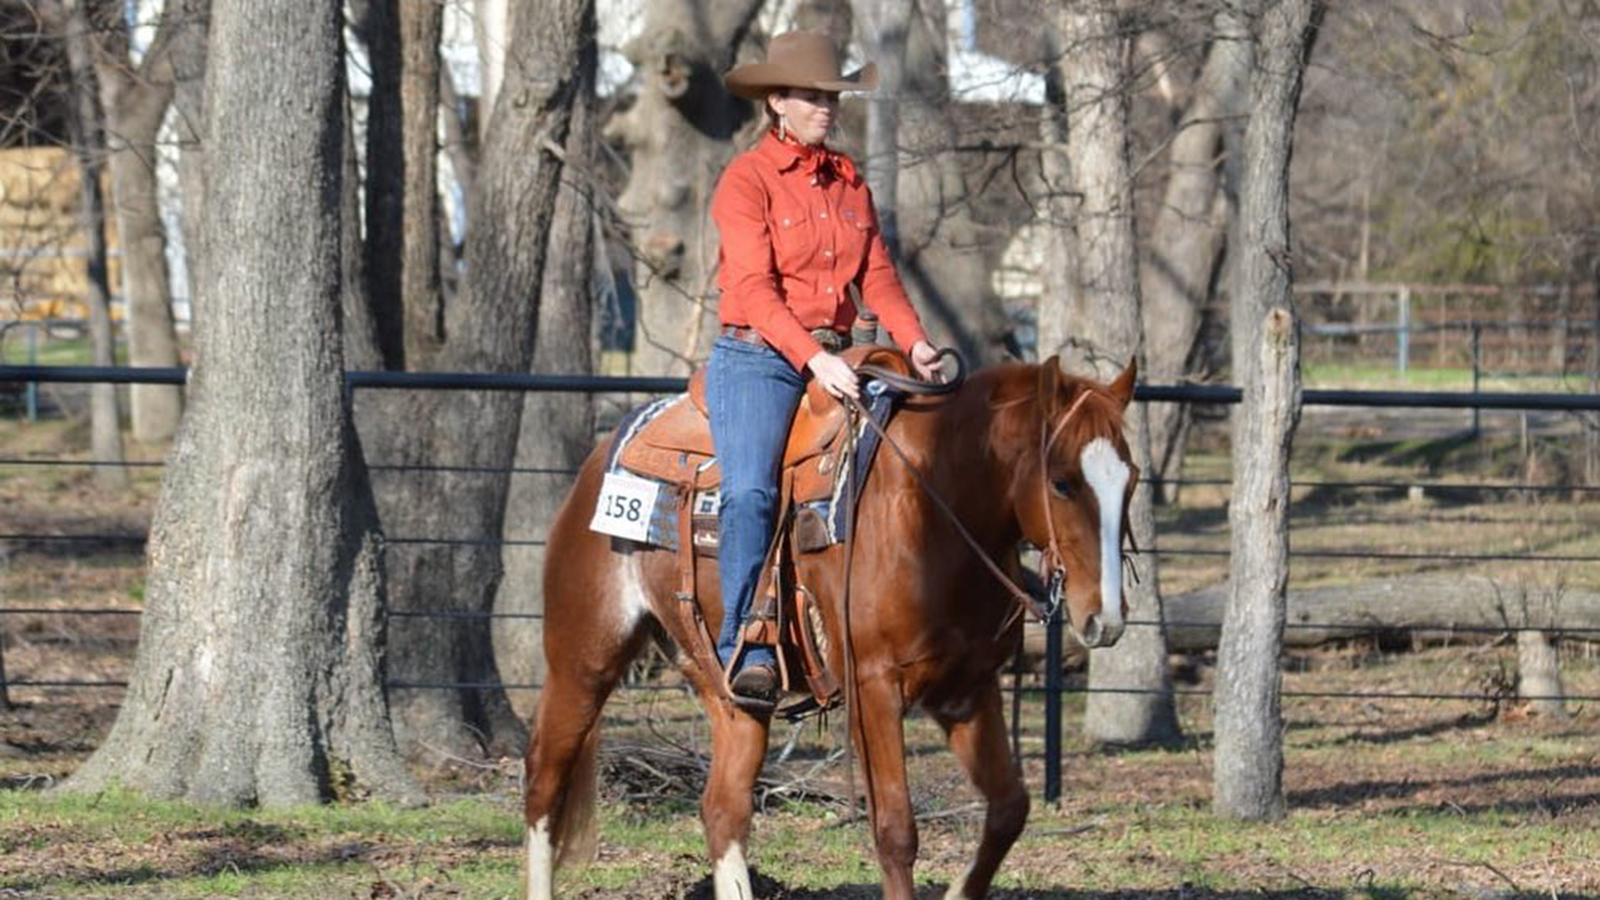 A ranch horse isolation show takes into social distancing into consideration.